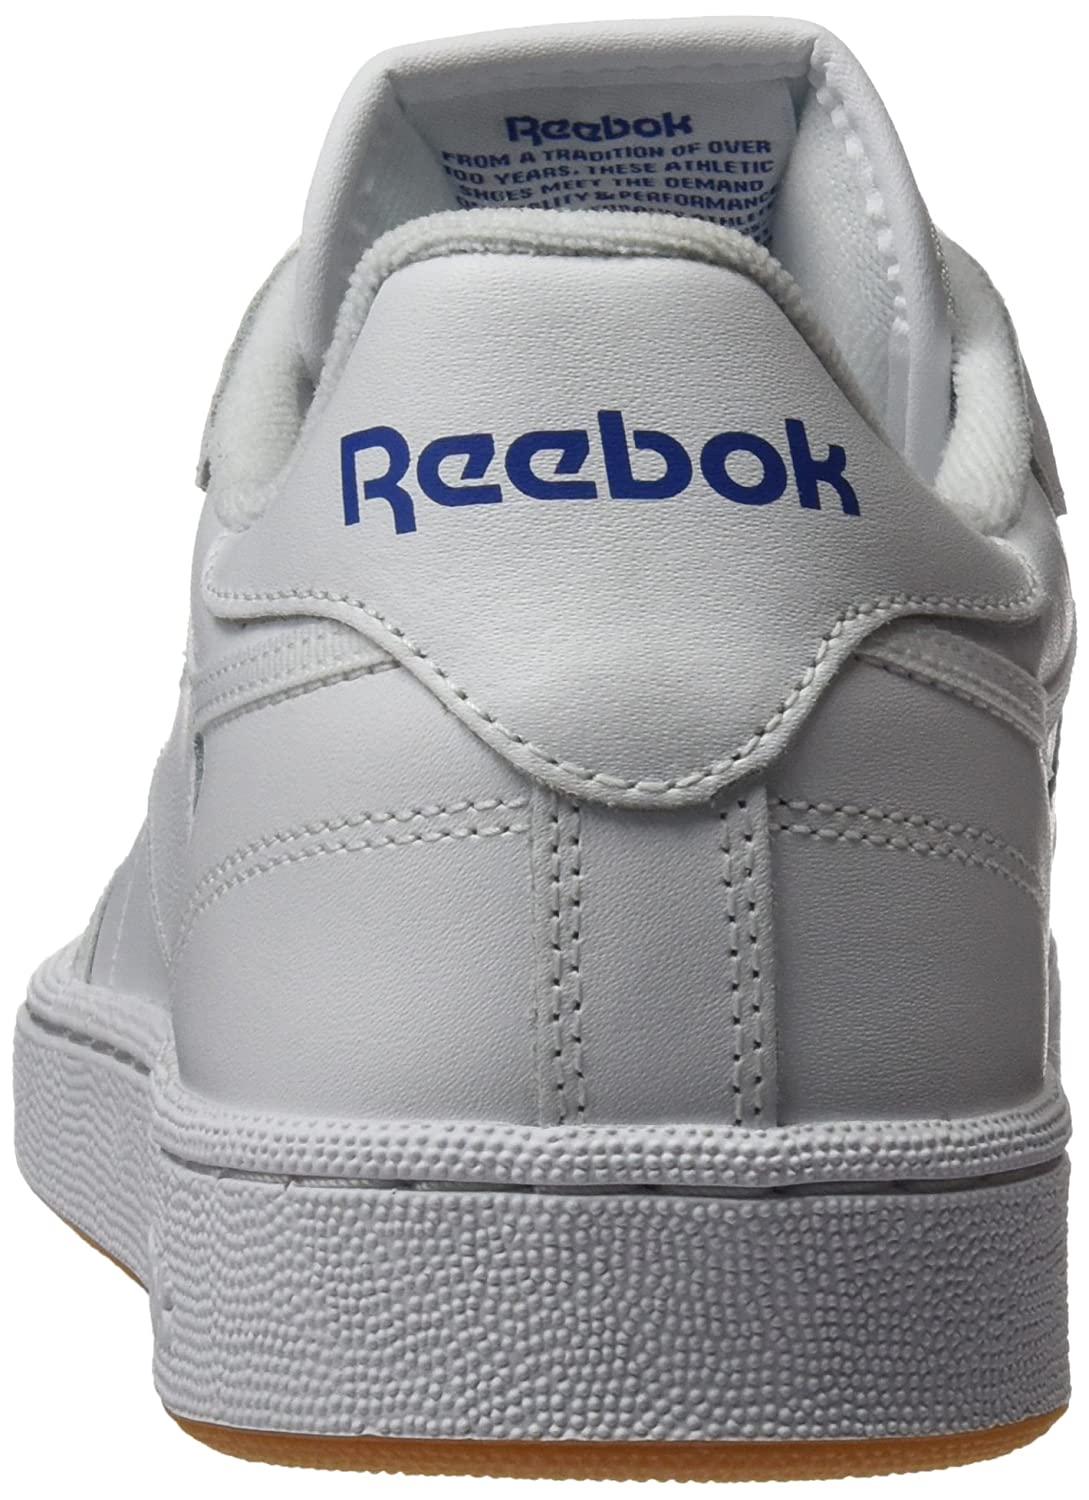 43022a211f2 Reebok Men s Club C 85 Ar0459 Low-top Trainers White (Intense White Royal- Gum) 12 UK  Buy Online at Low Prices in India - Amazon.in